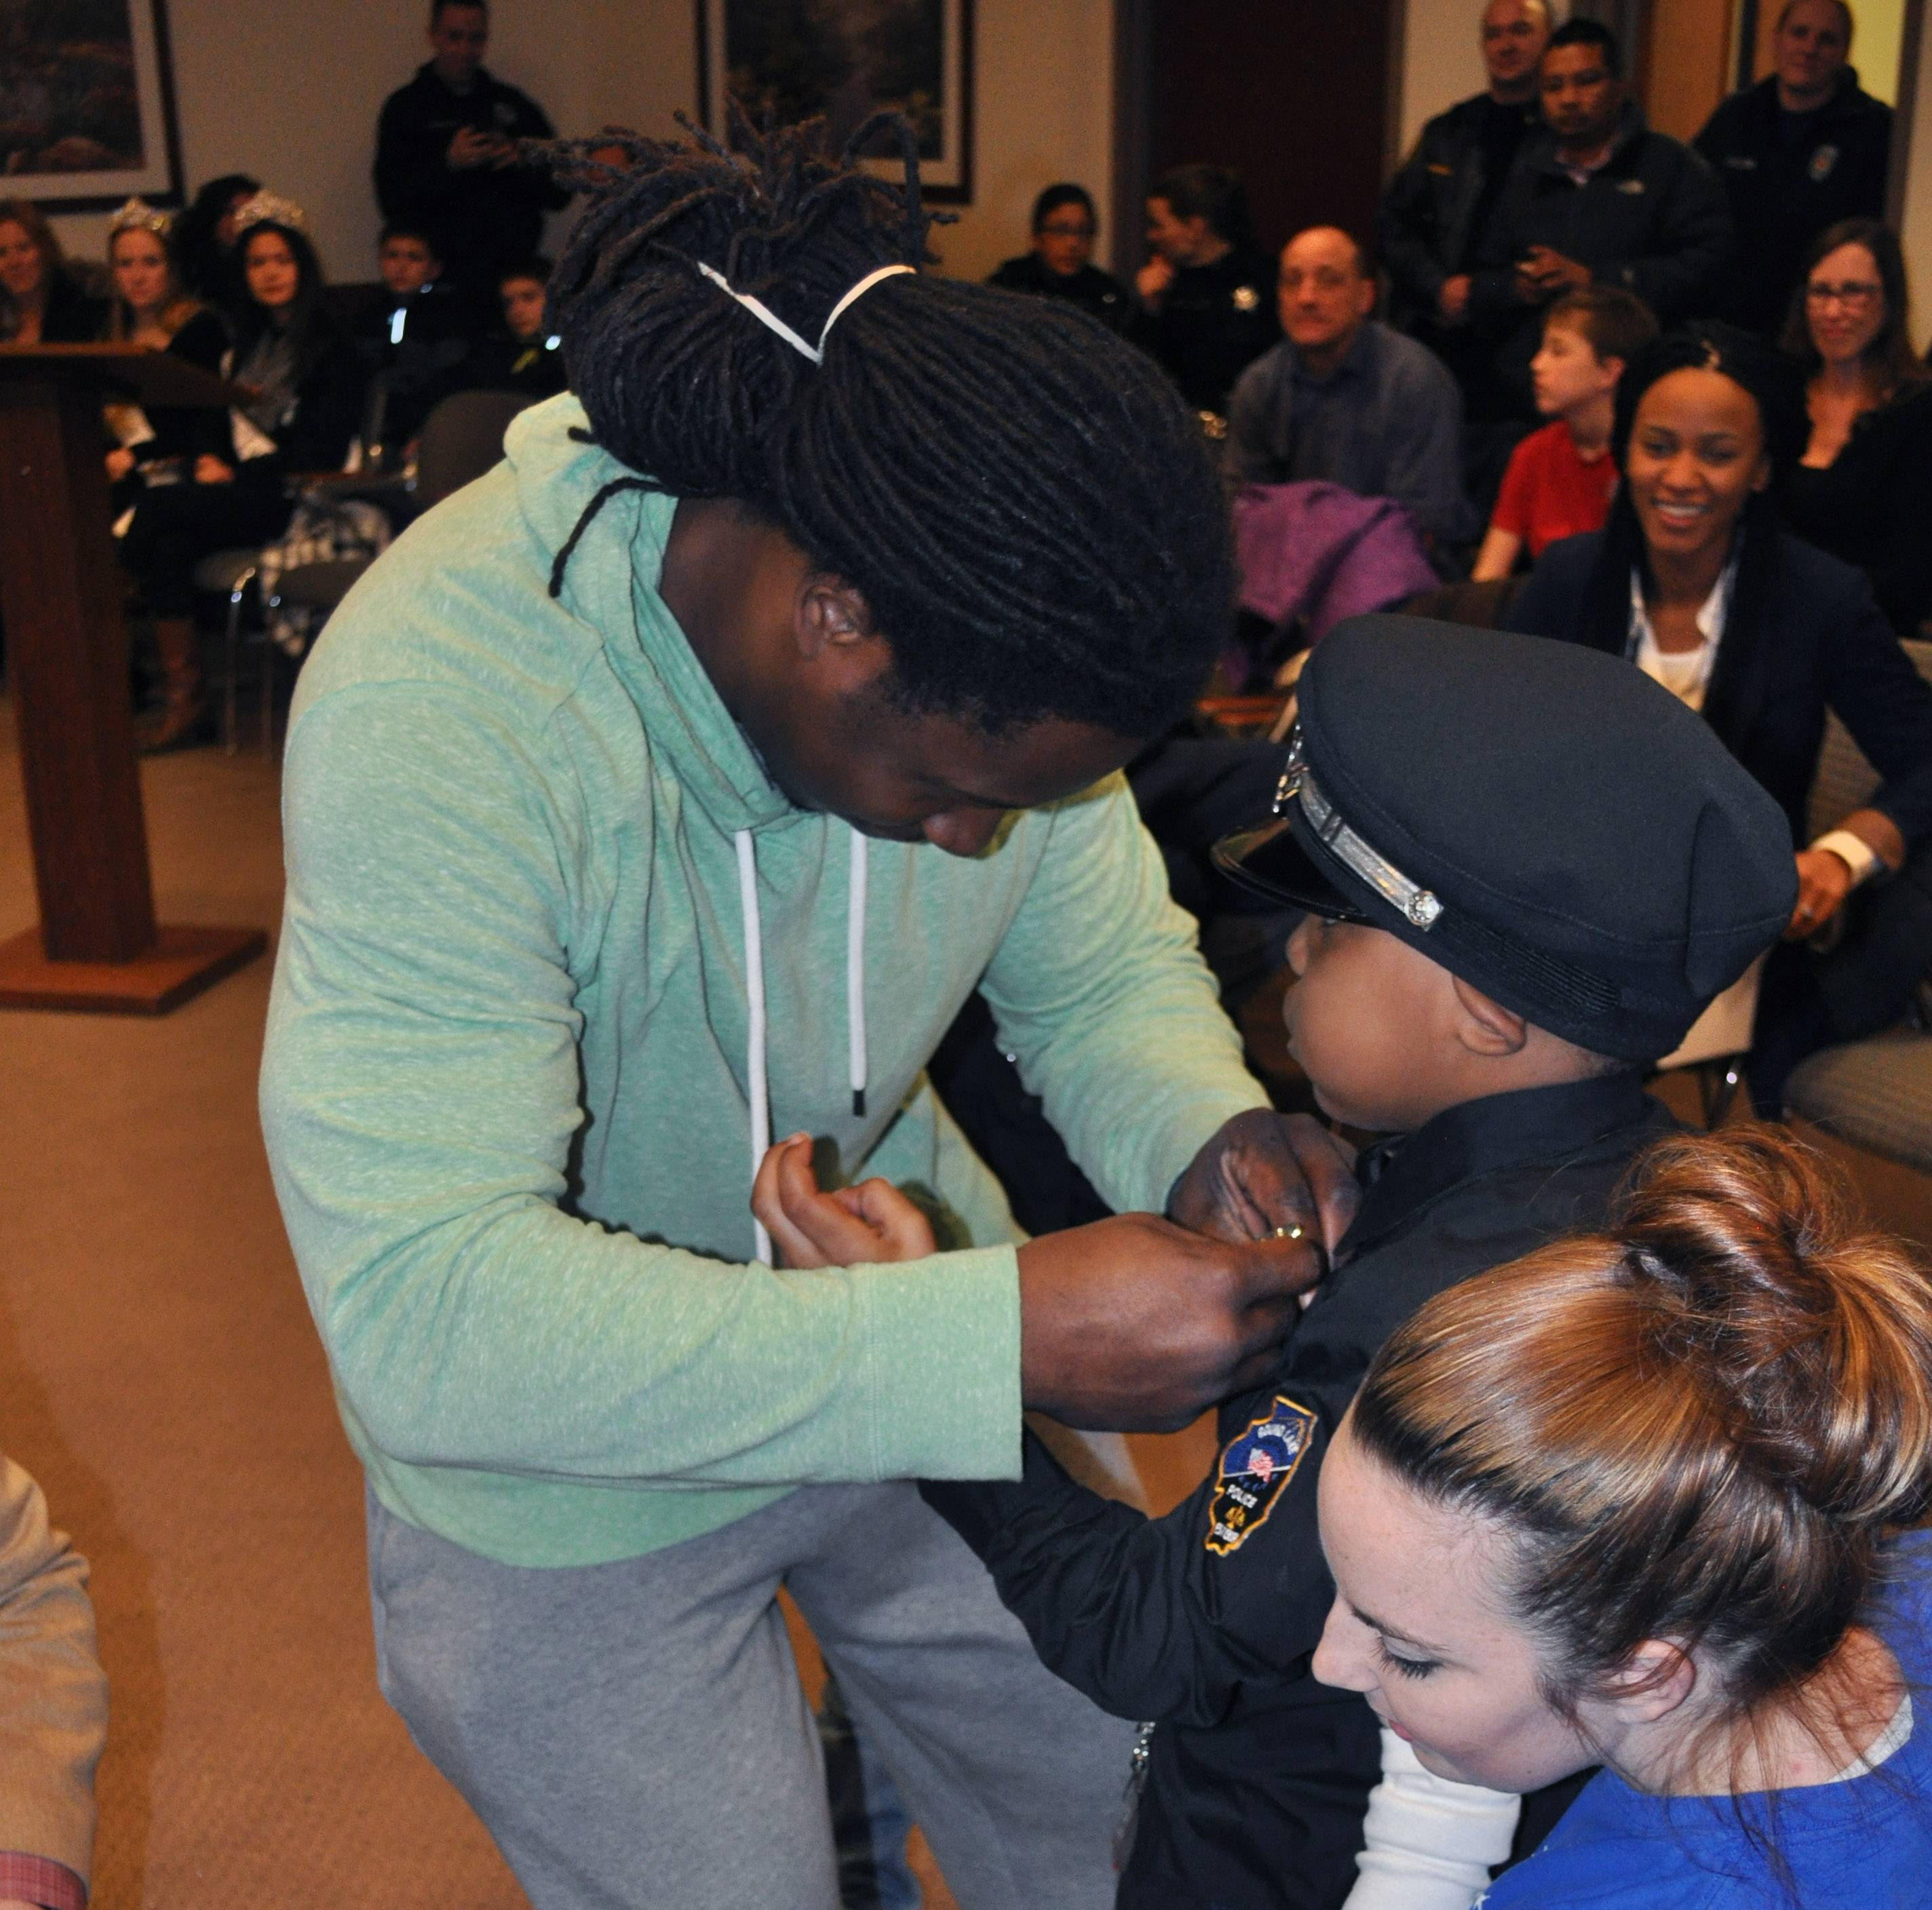 Round Lake fulfills boy's dream of becoming a police officer